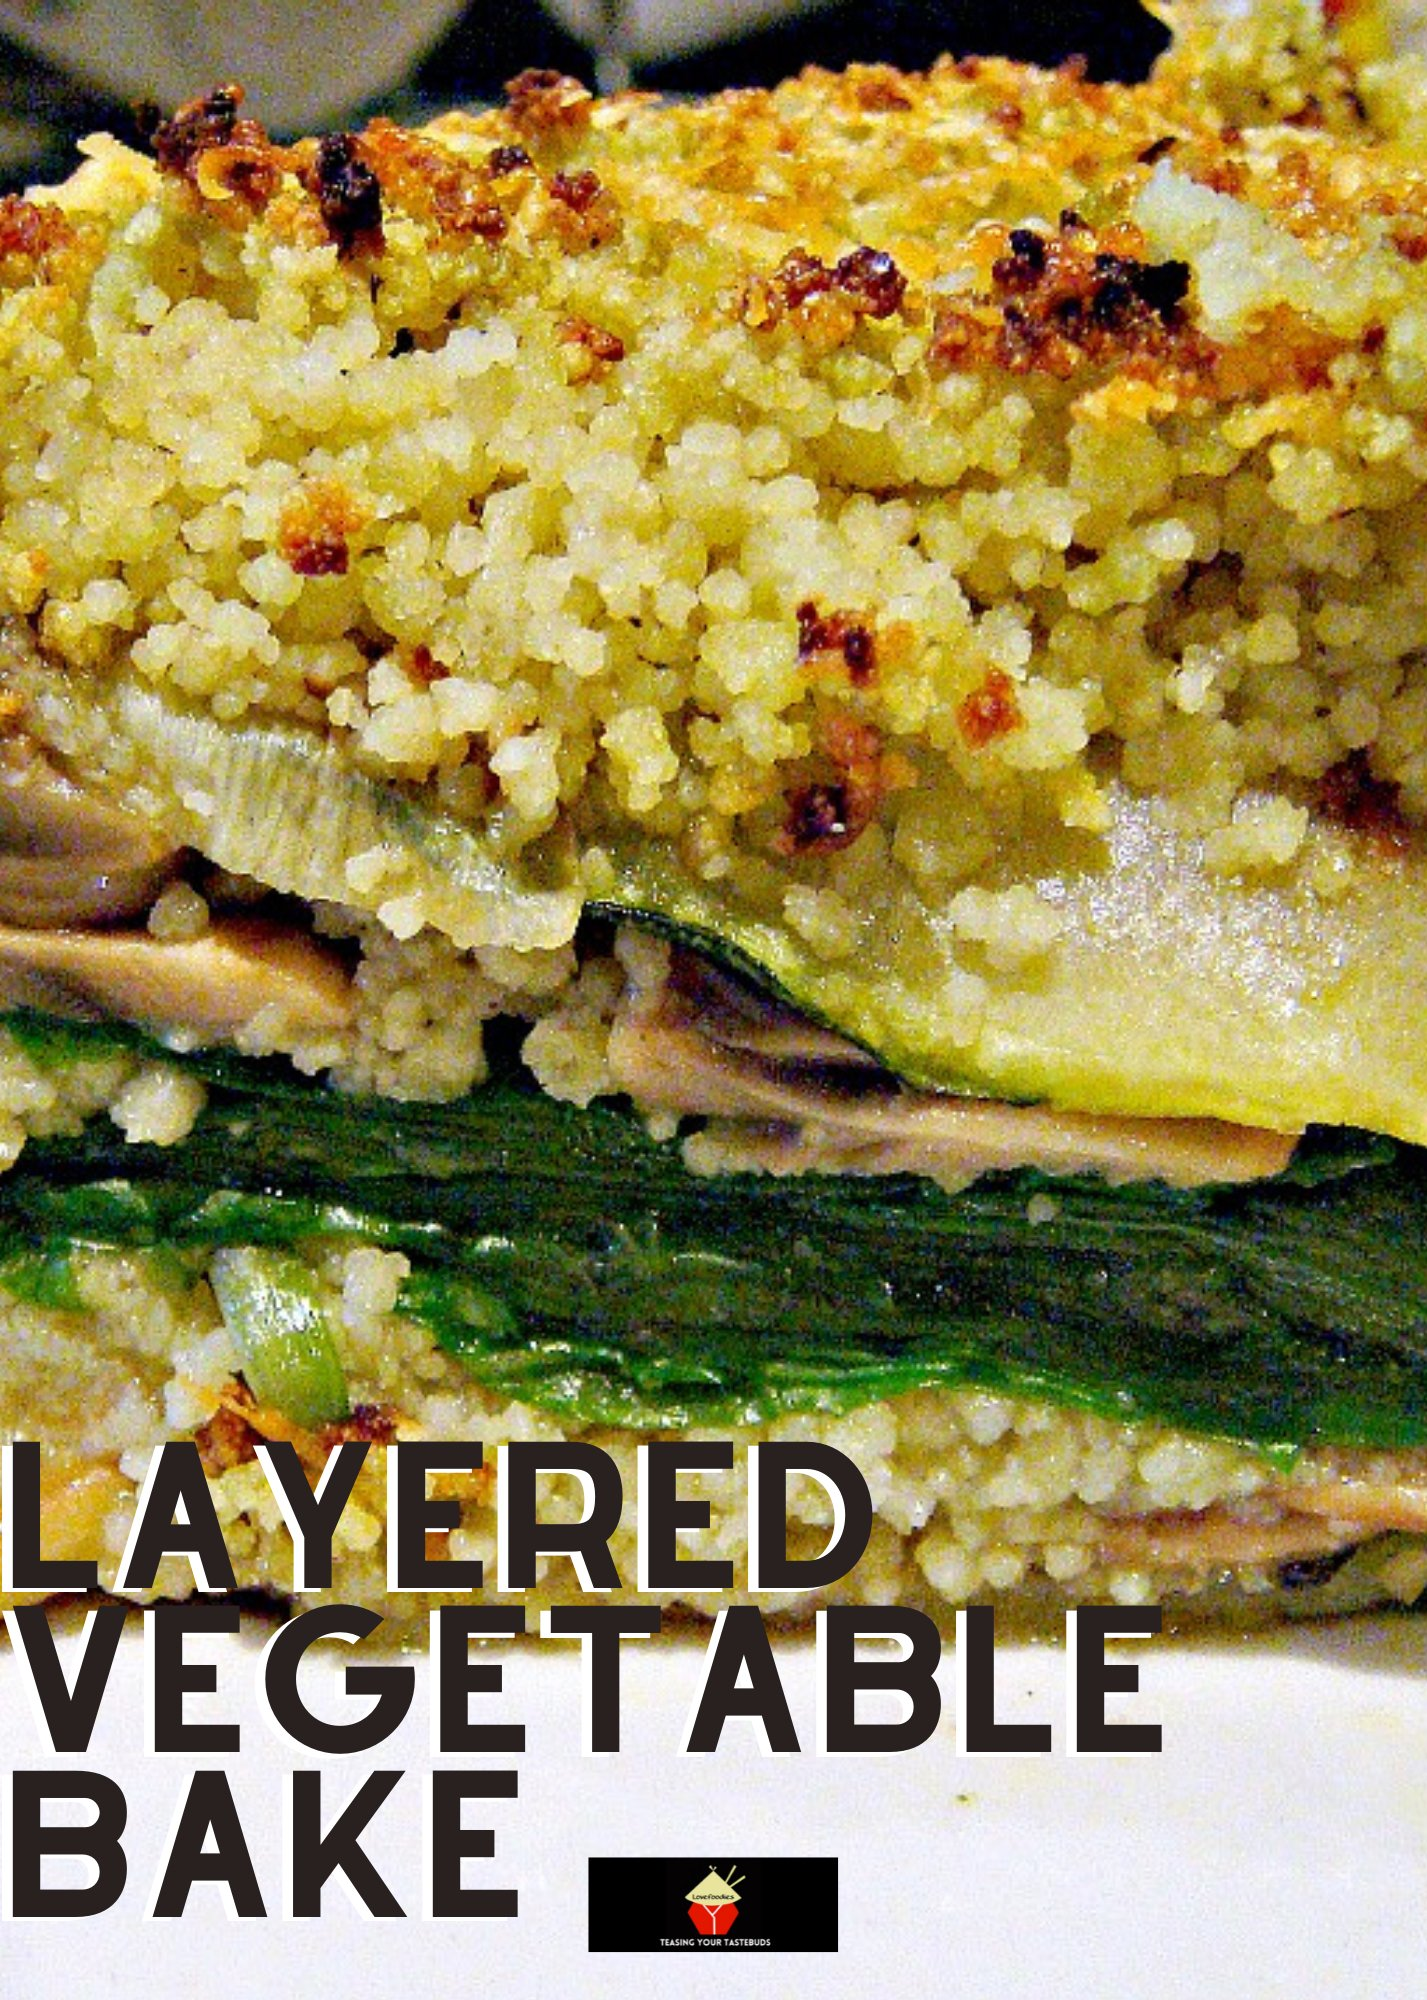 Layered Vegetable Bake, An easy and delicious oven-baked recipe with layers of zucchini, spinach, mushrooms, couscous and sprinkled with cheese.